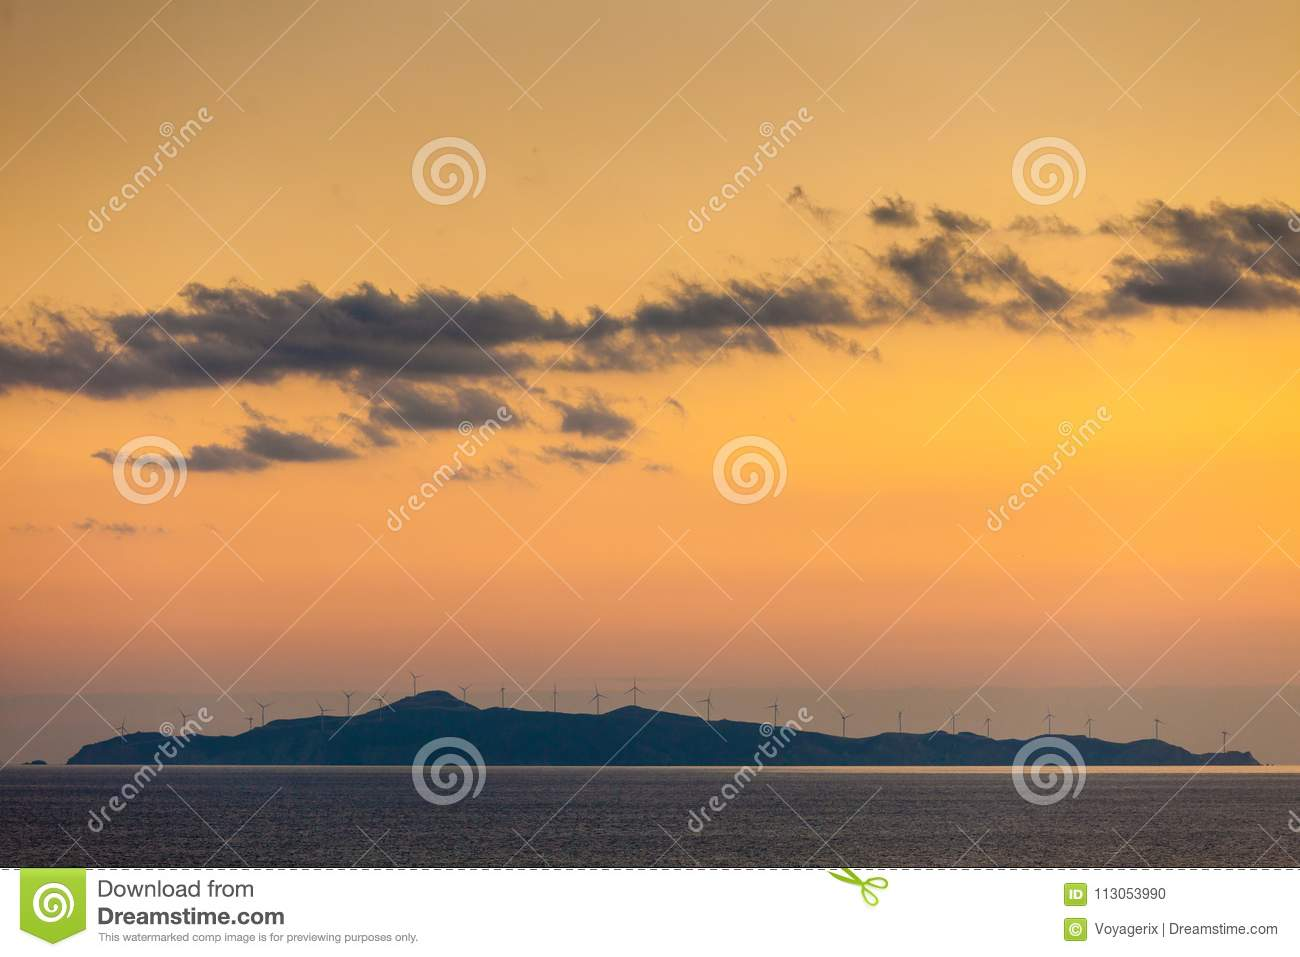 Sea view with wind turbines farm at sunset